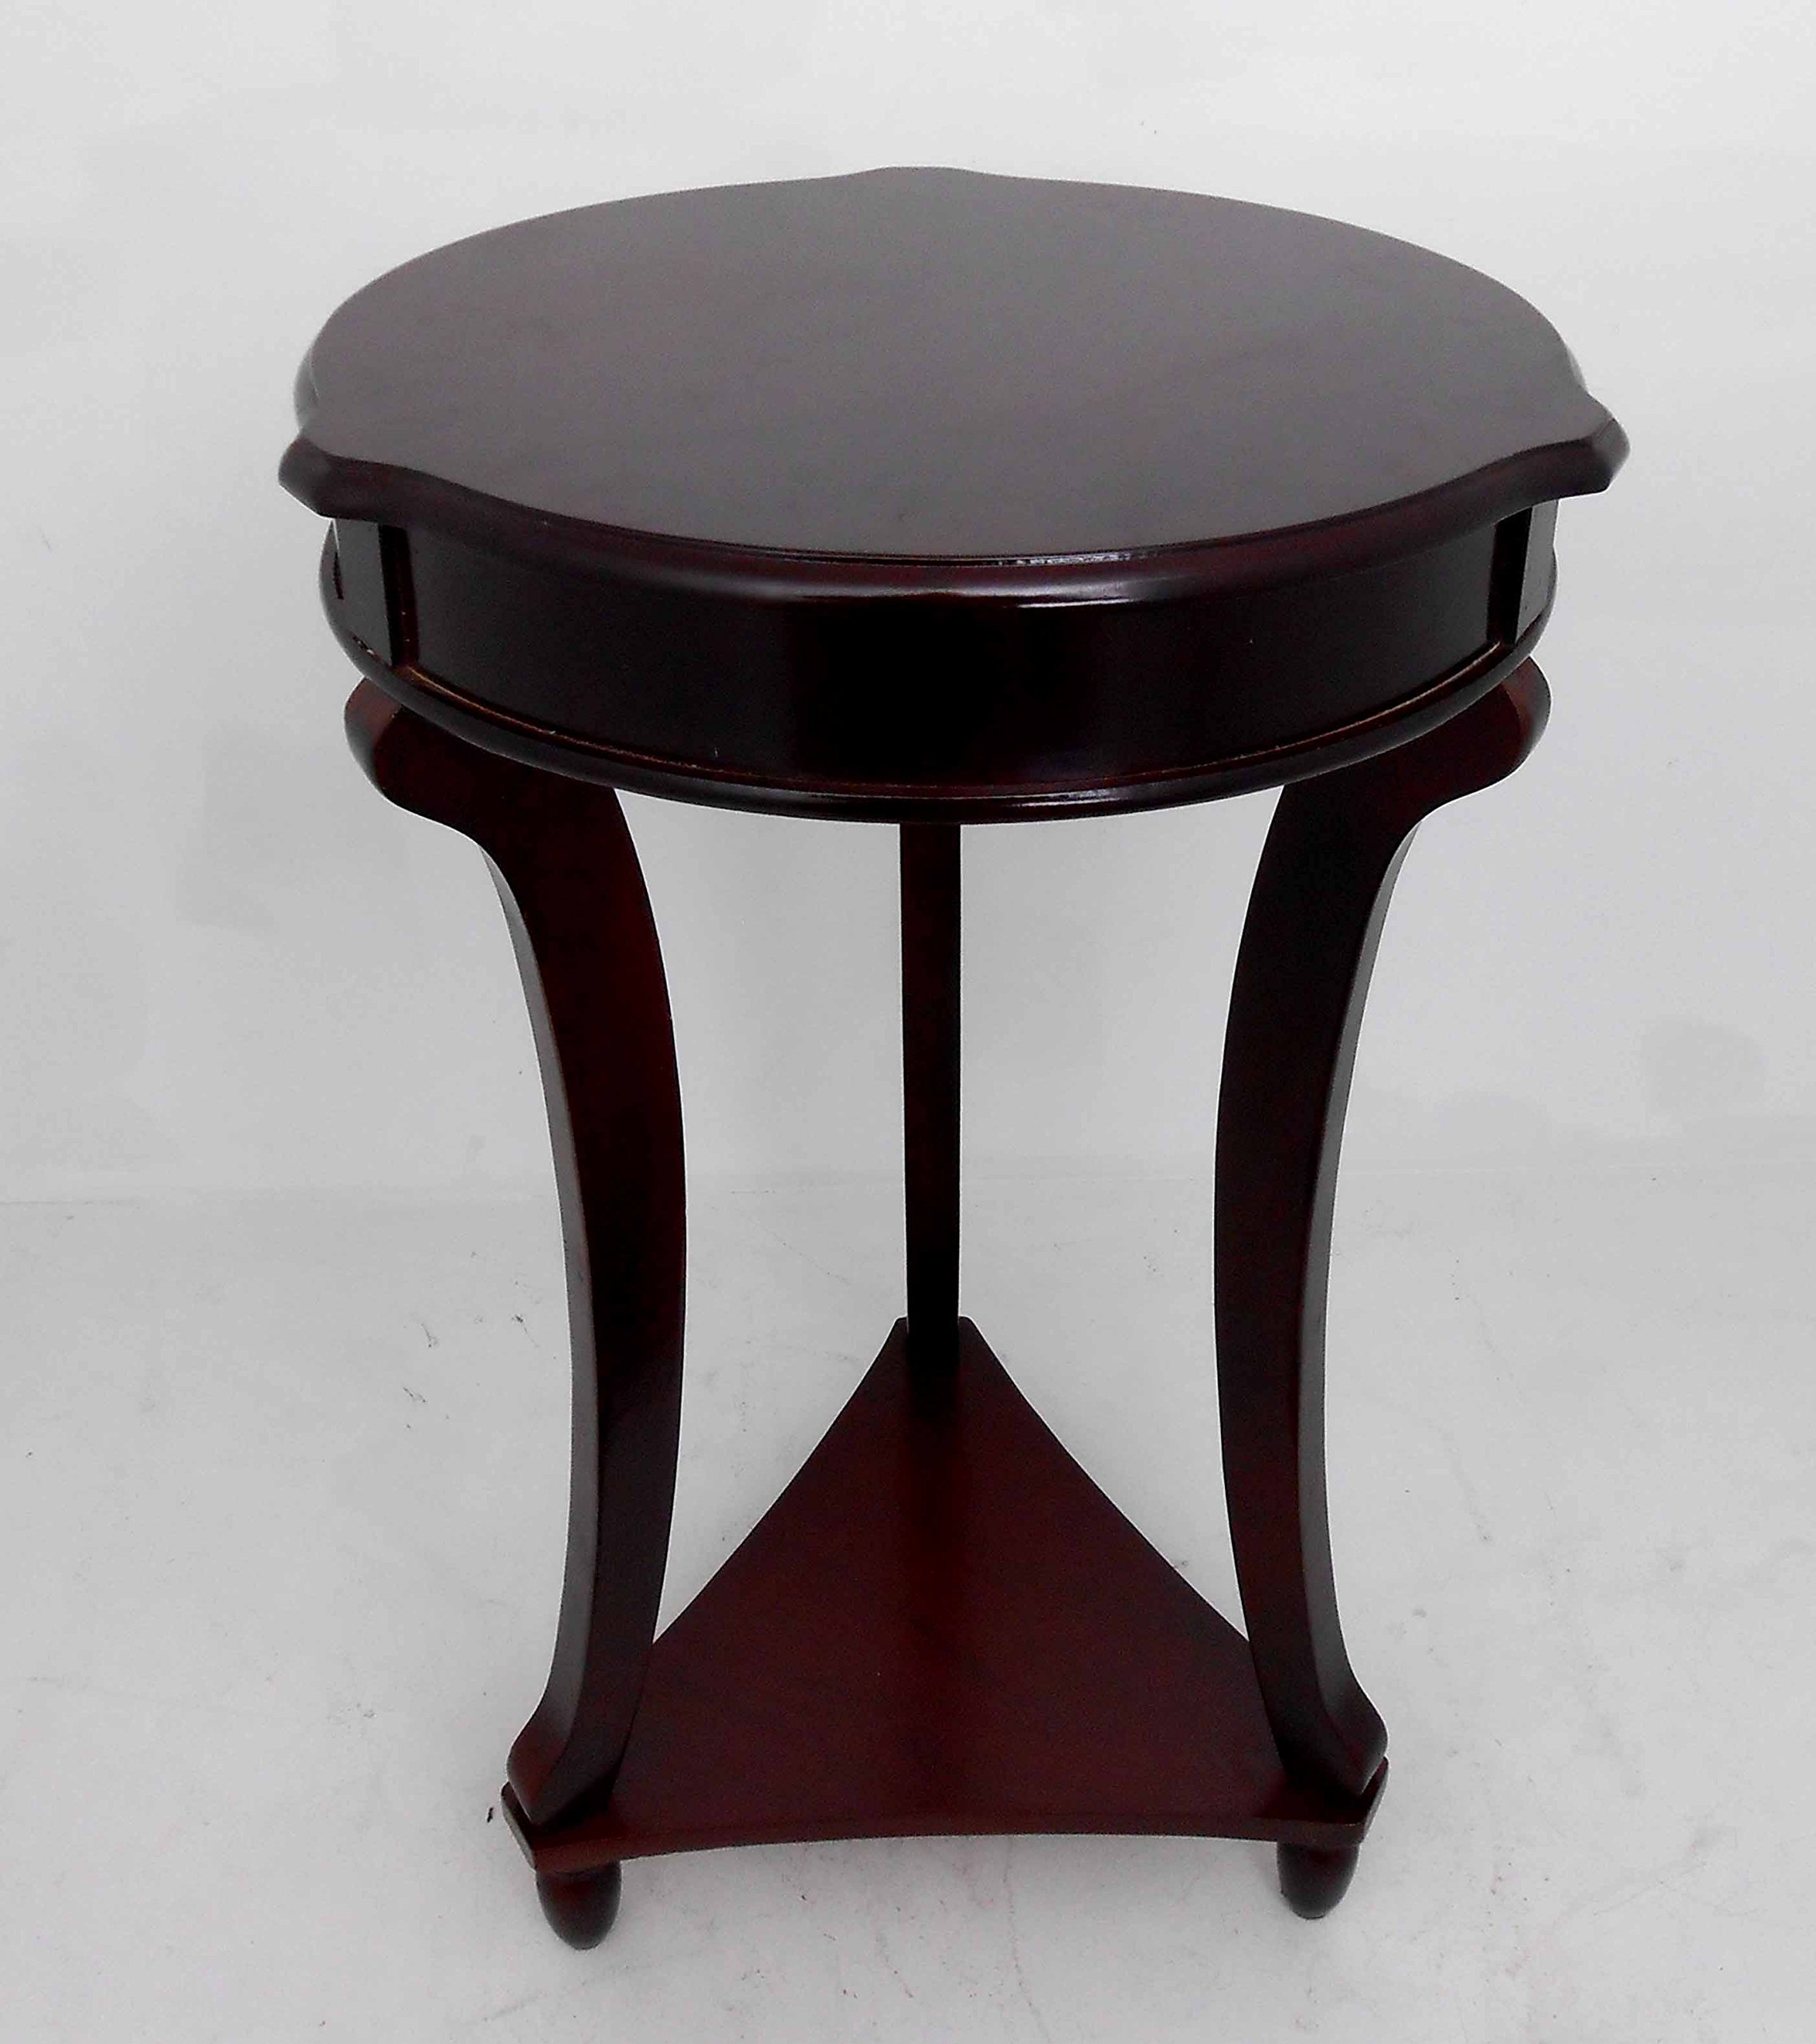 NF Brown Round accent tables / End, telephone, plant table / Home Decorative # 1763